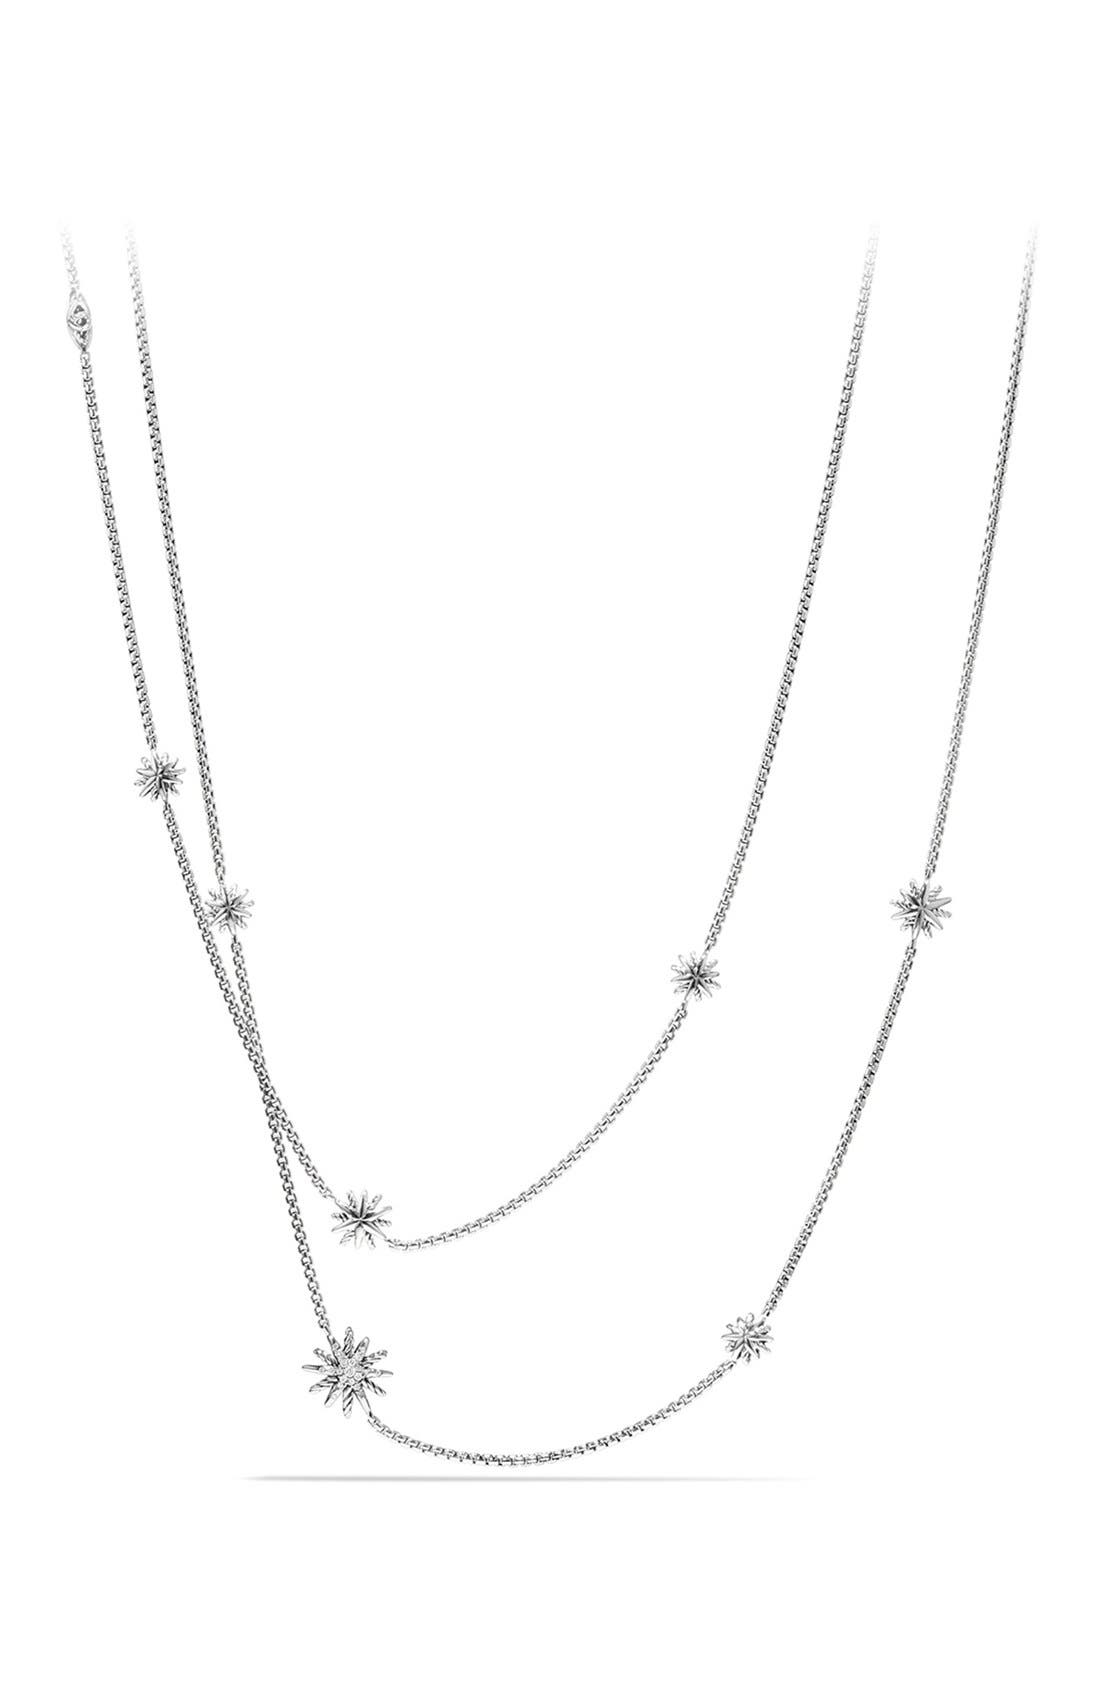 DAVID YURMAN Starburst Station Necklace with Diamonds